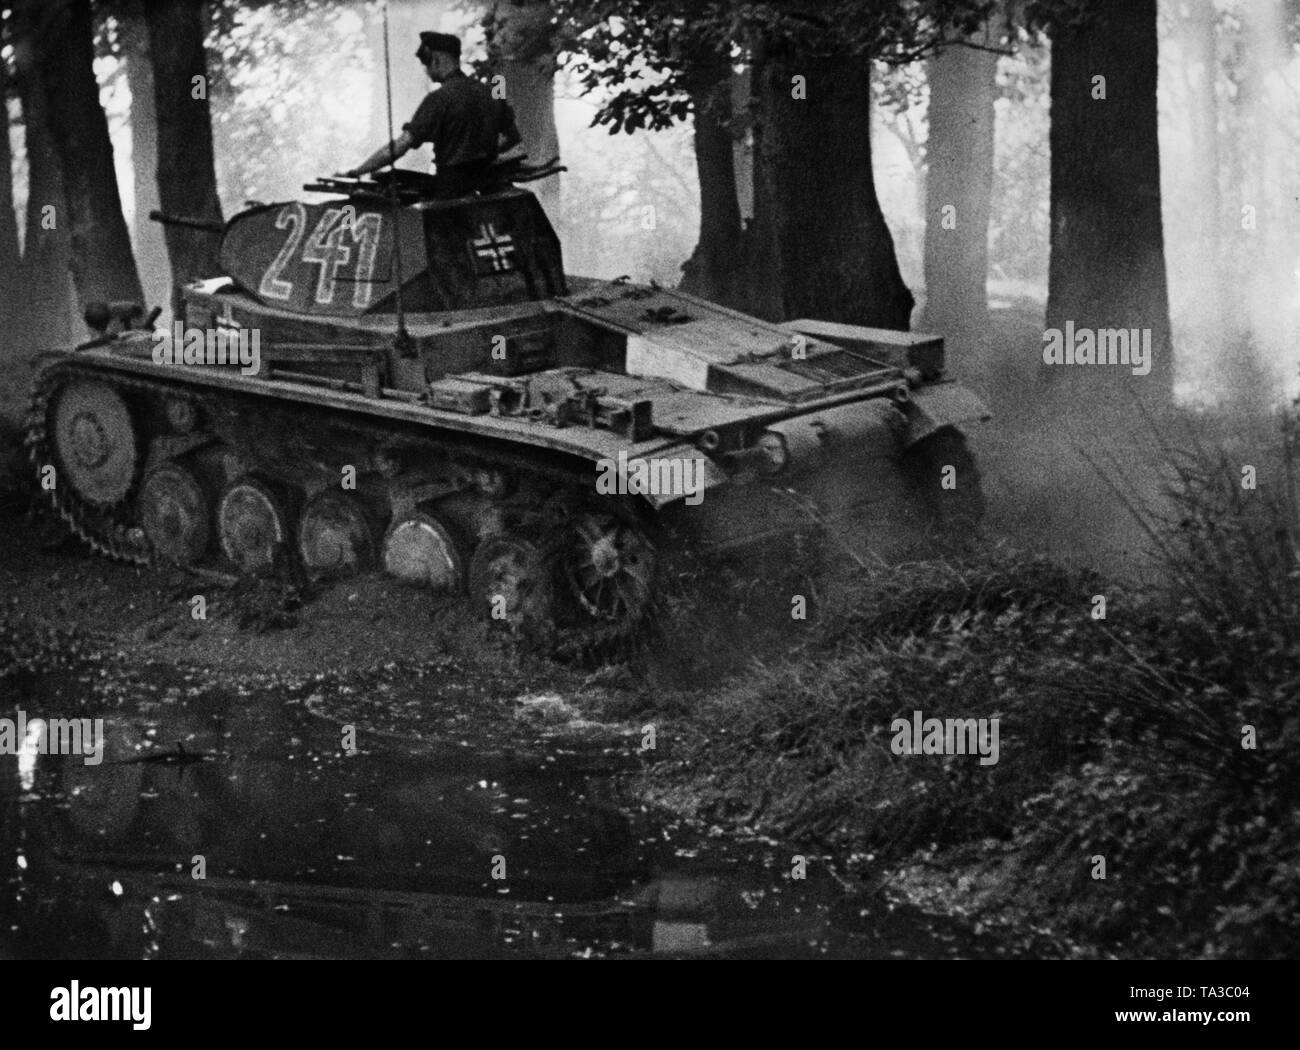 A German Panzer II advances through a forest. Probably a moviestill from Sieg im Westen (Victory in the West). Stock Photo